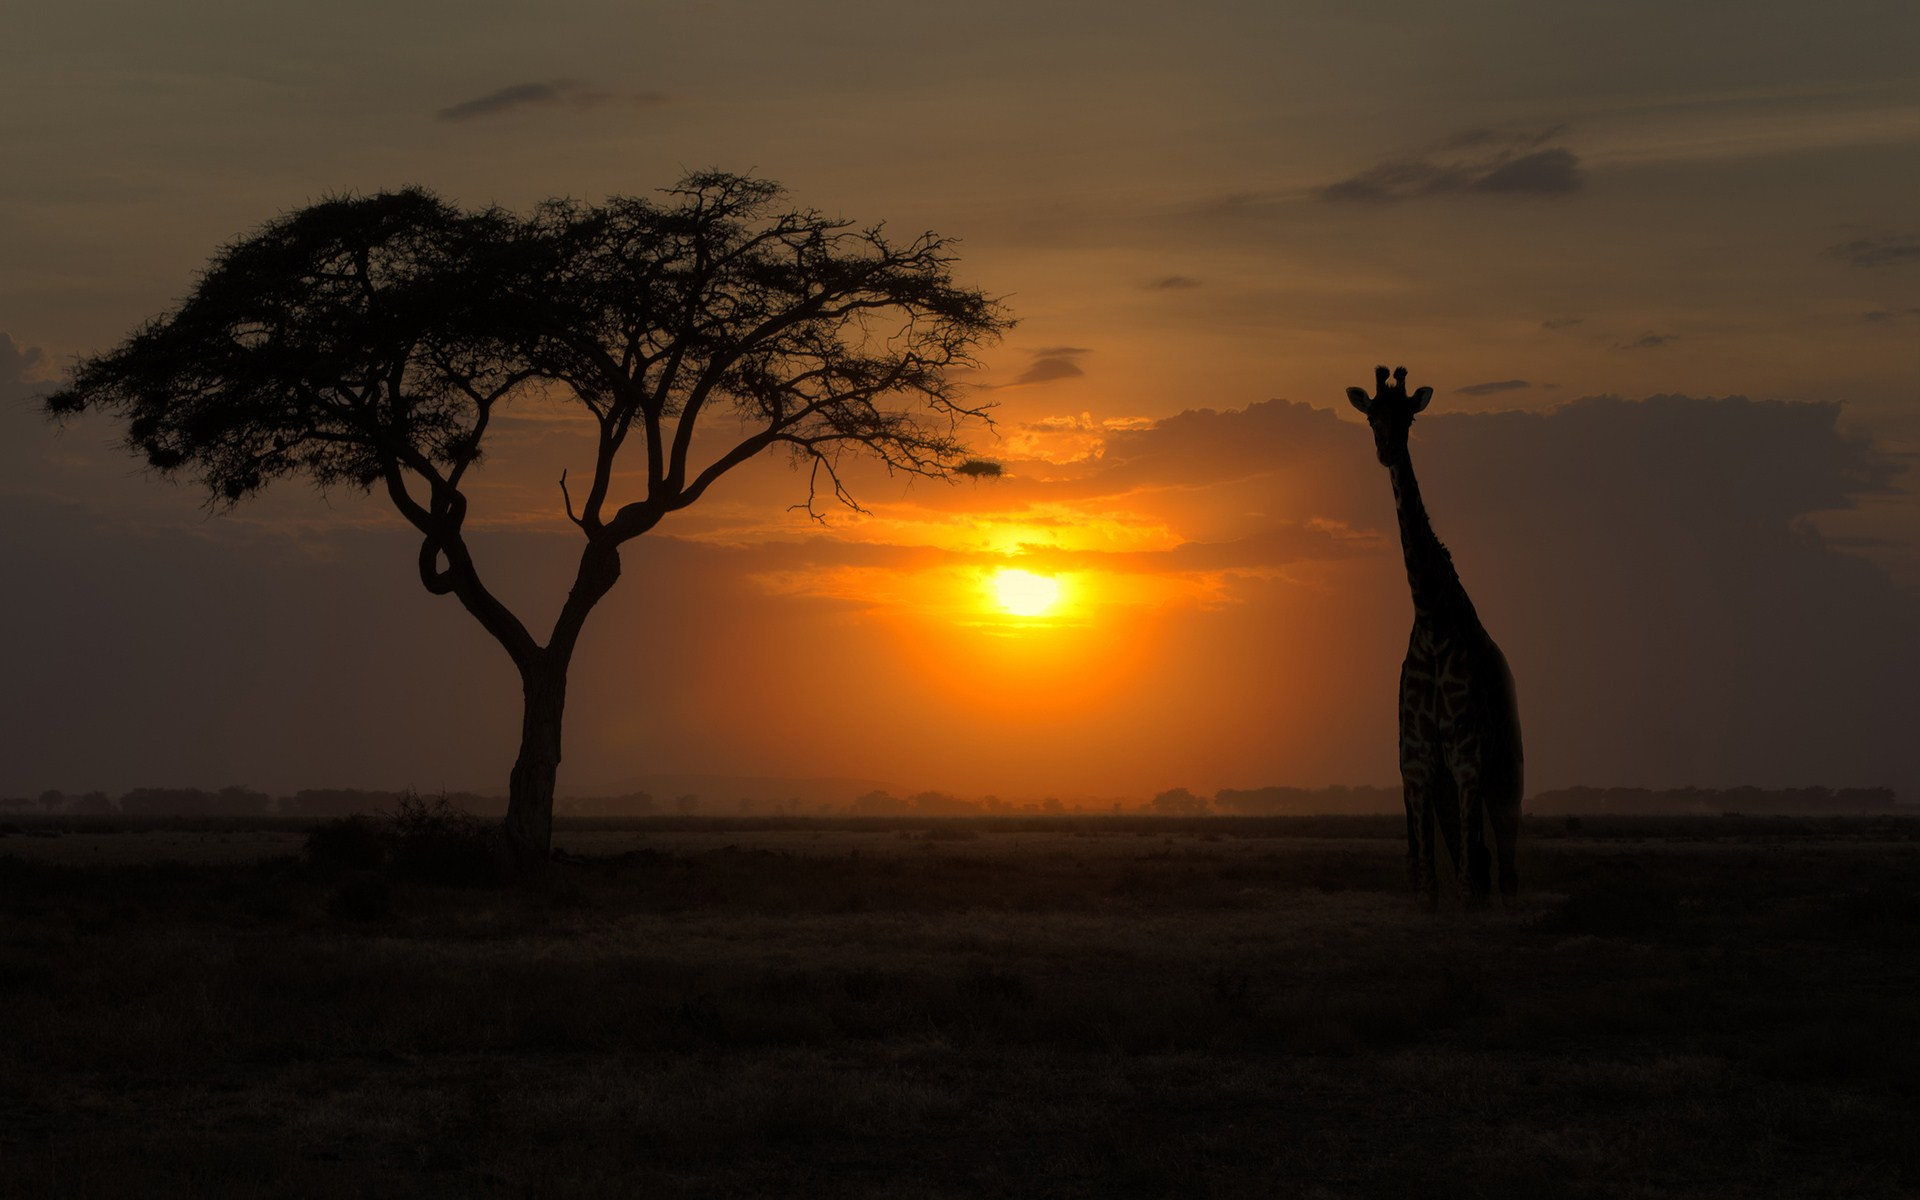 sunset wallpapers wildlife